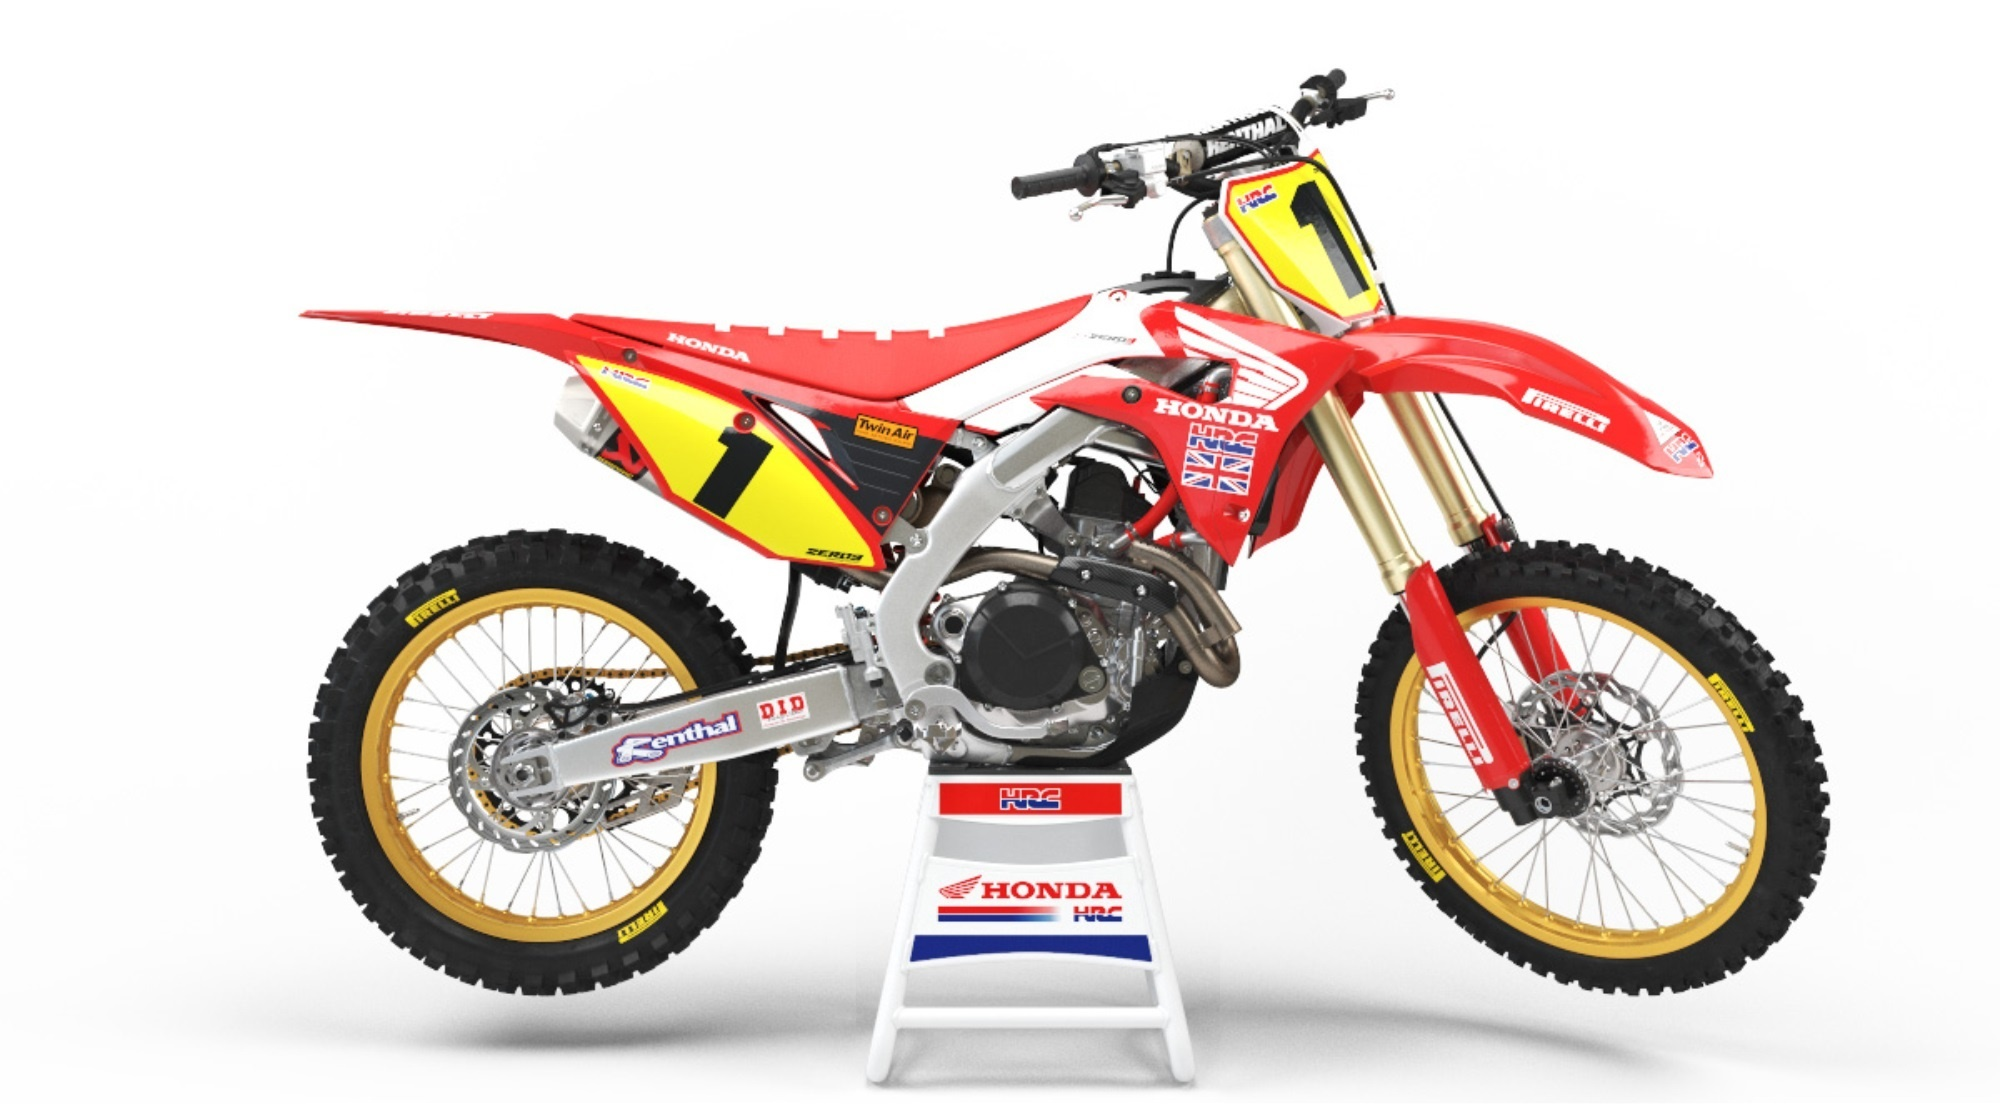 Honda Off Road CRF450R Dave Thorpe Special Edition